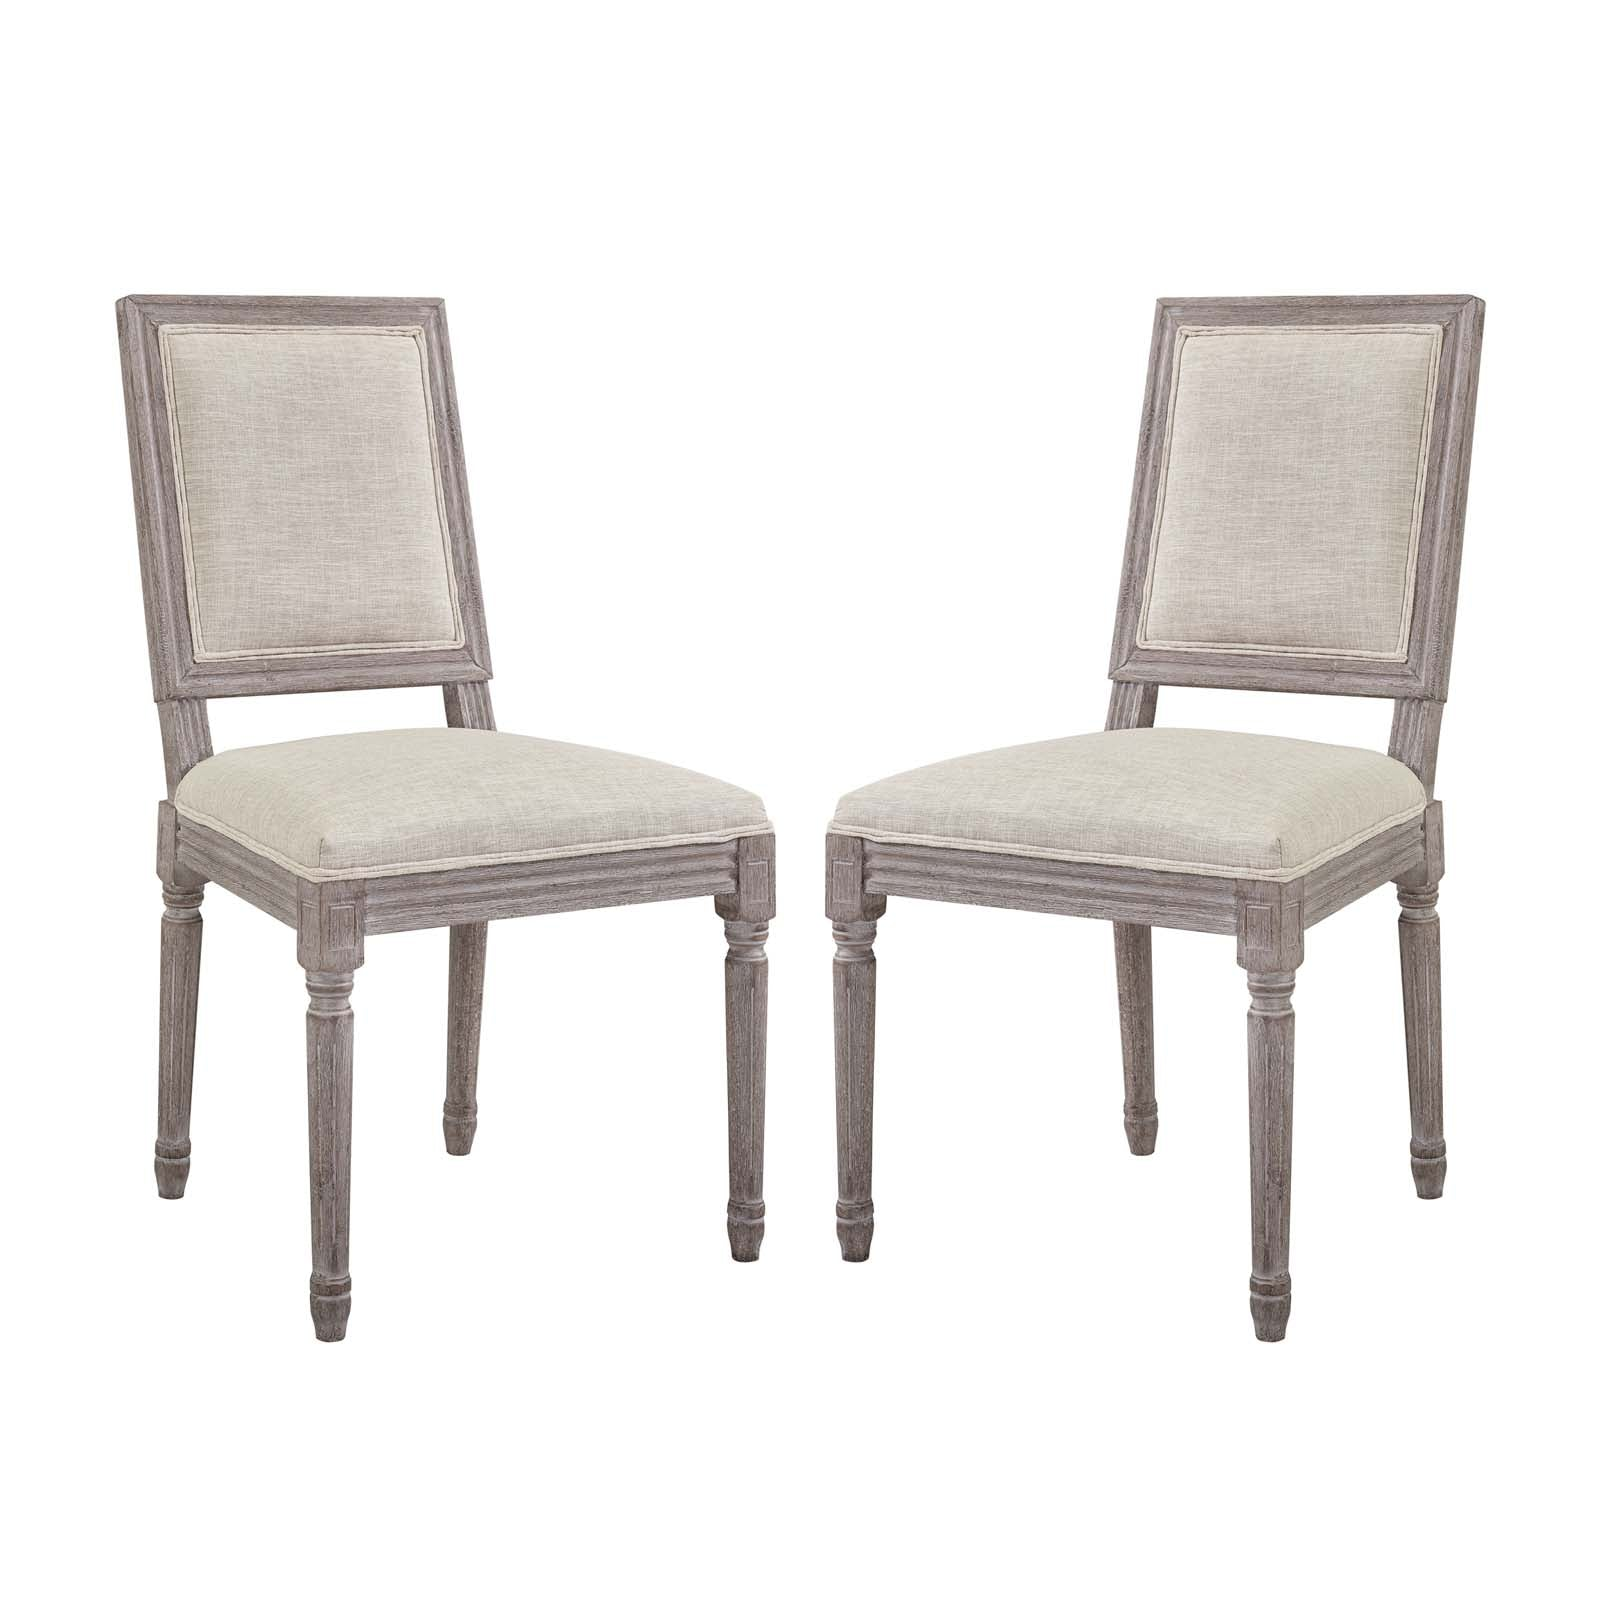 Court Dining Side Chair Upholstered Fabric Set of 2